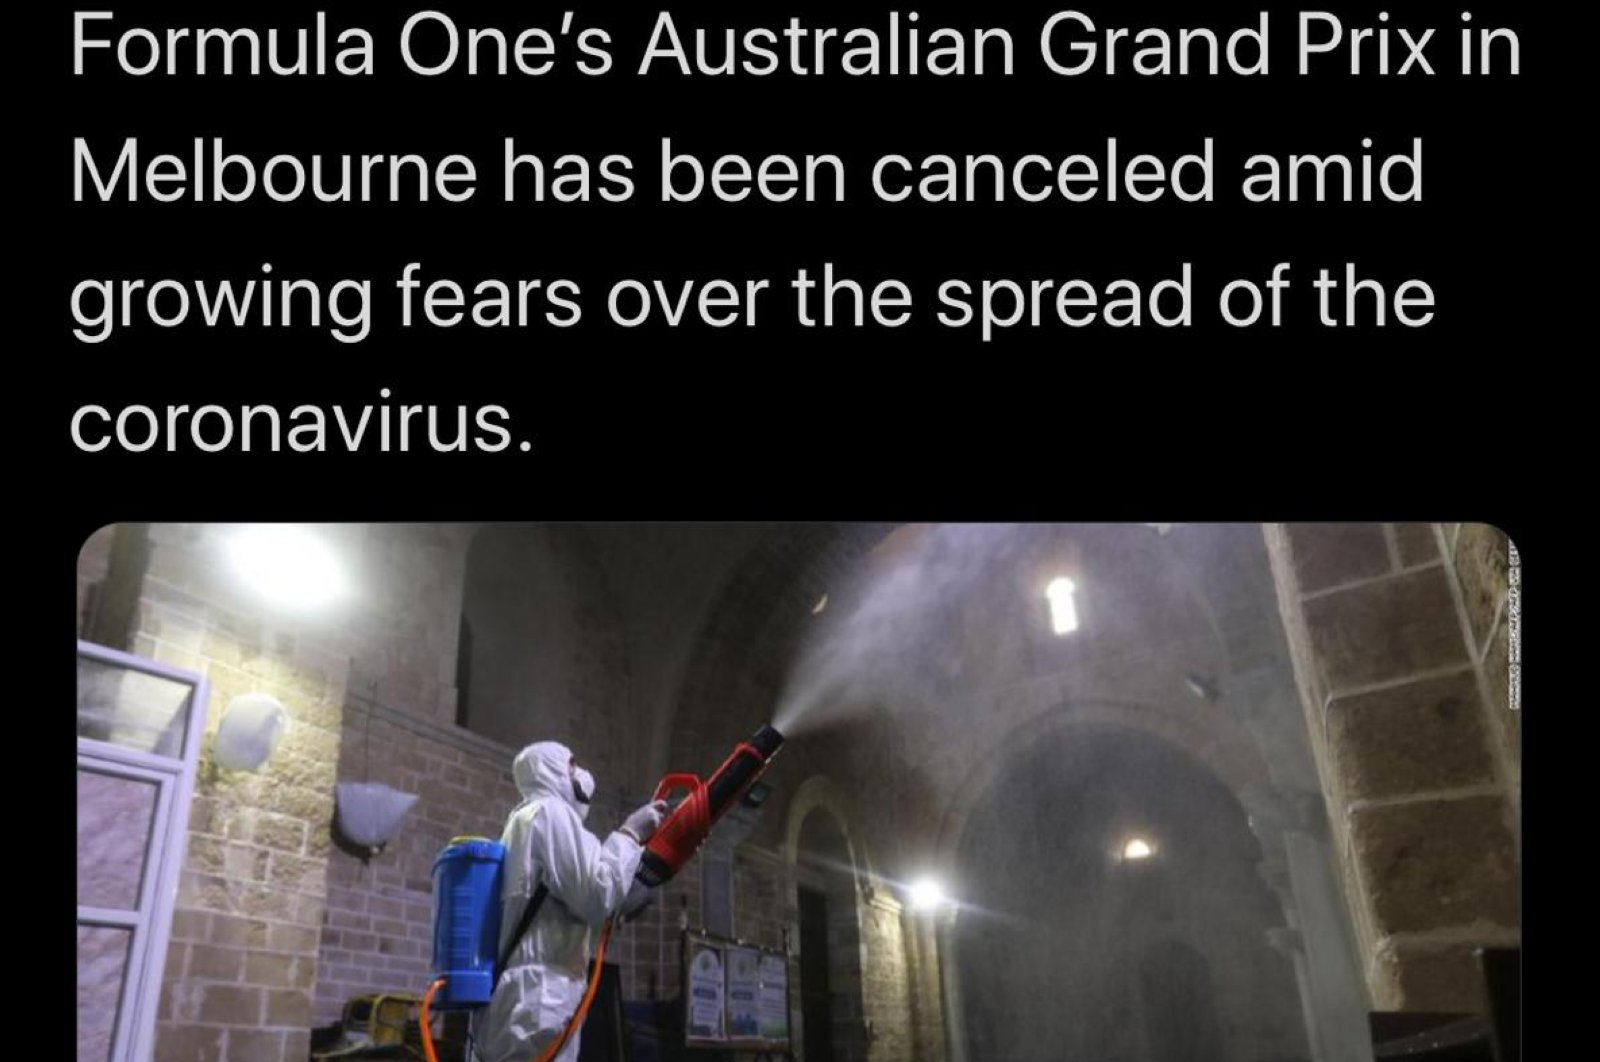 CNN published the news of the cancellation of the Formula One Grand Prix Race in Melbourne with visuals from Istanbul, March 14, 2020